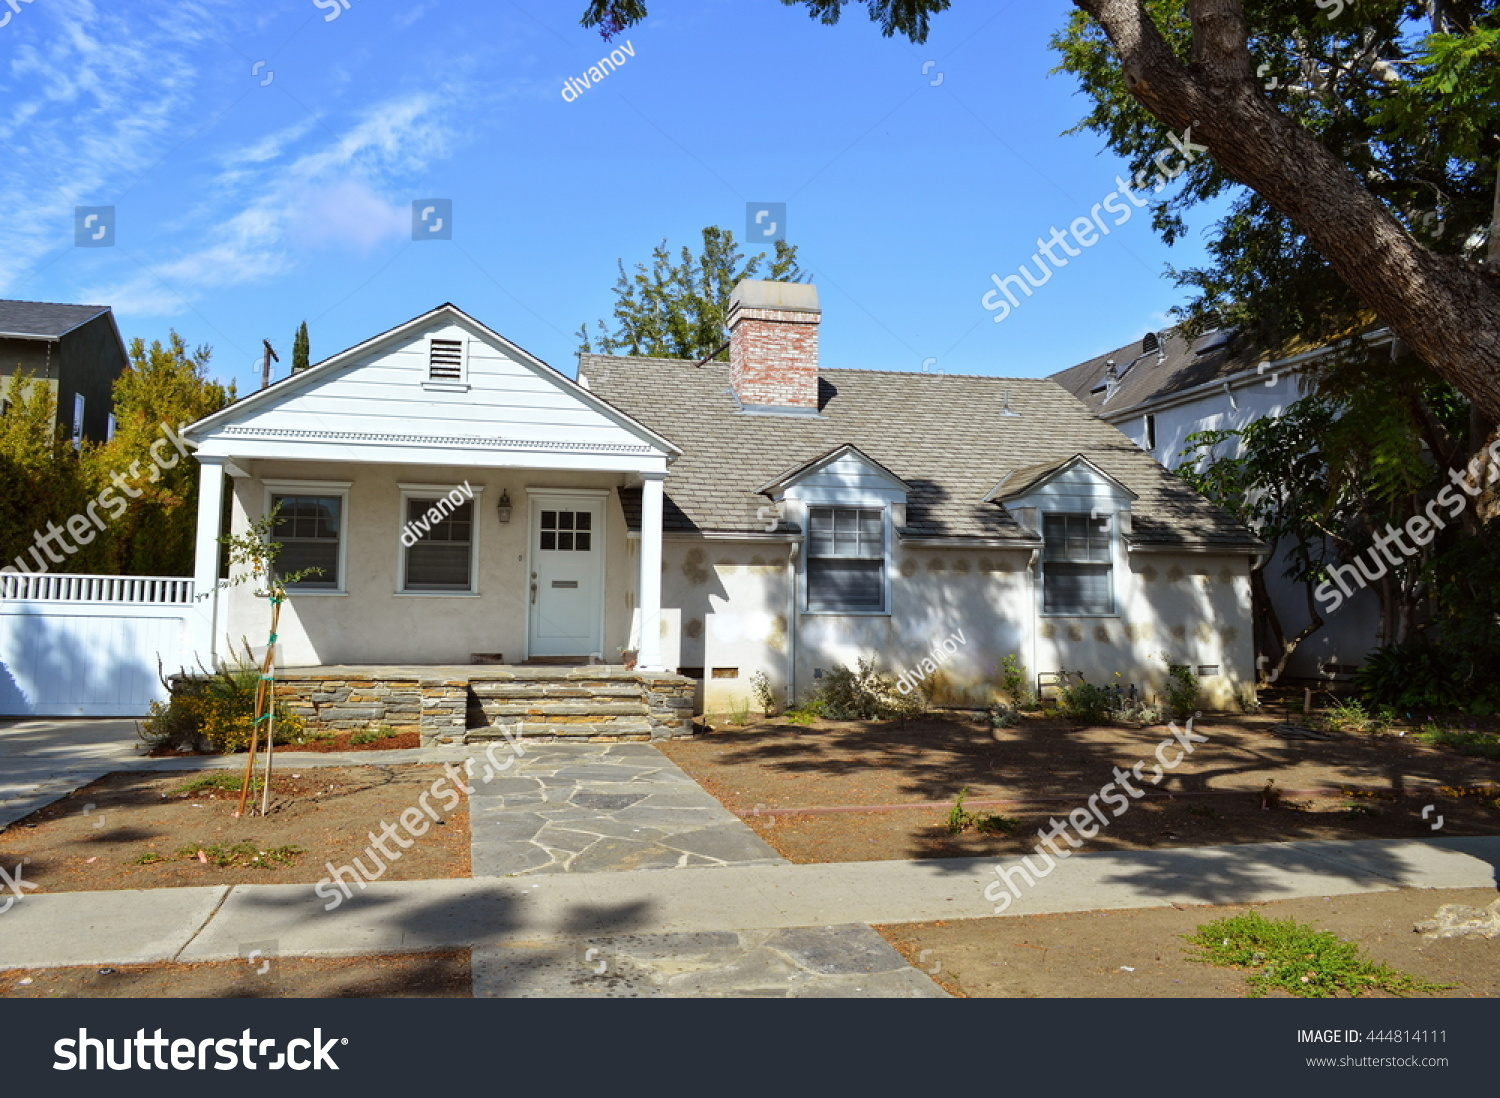 Beautiful homes and estates with nicely landscaped front yard in the  suburbs of Los Angeles,